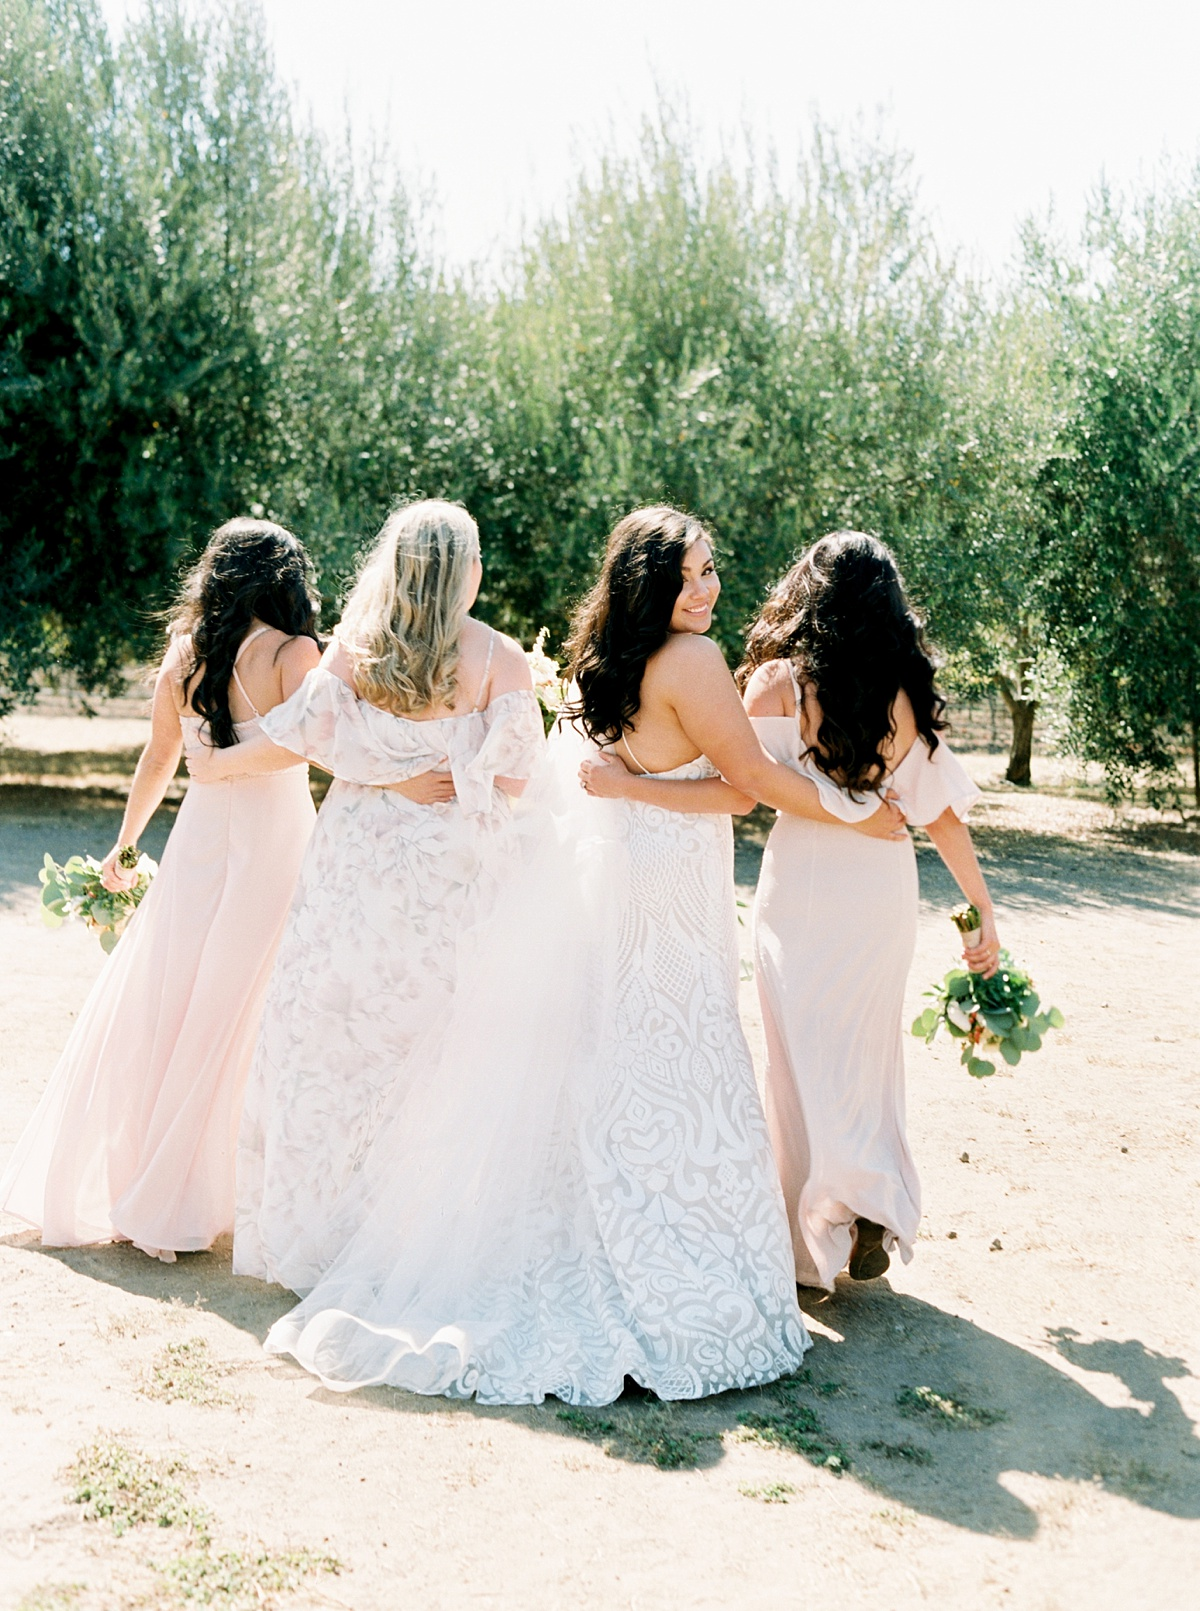 Fresno Wedding photographers, California fine art wedding photographer, Fresno Wedding Photography, California Wedding Photographers, Paso Robles wedding photographer, monterey wedding photographer